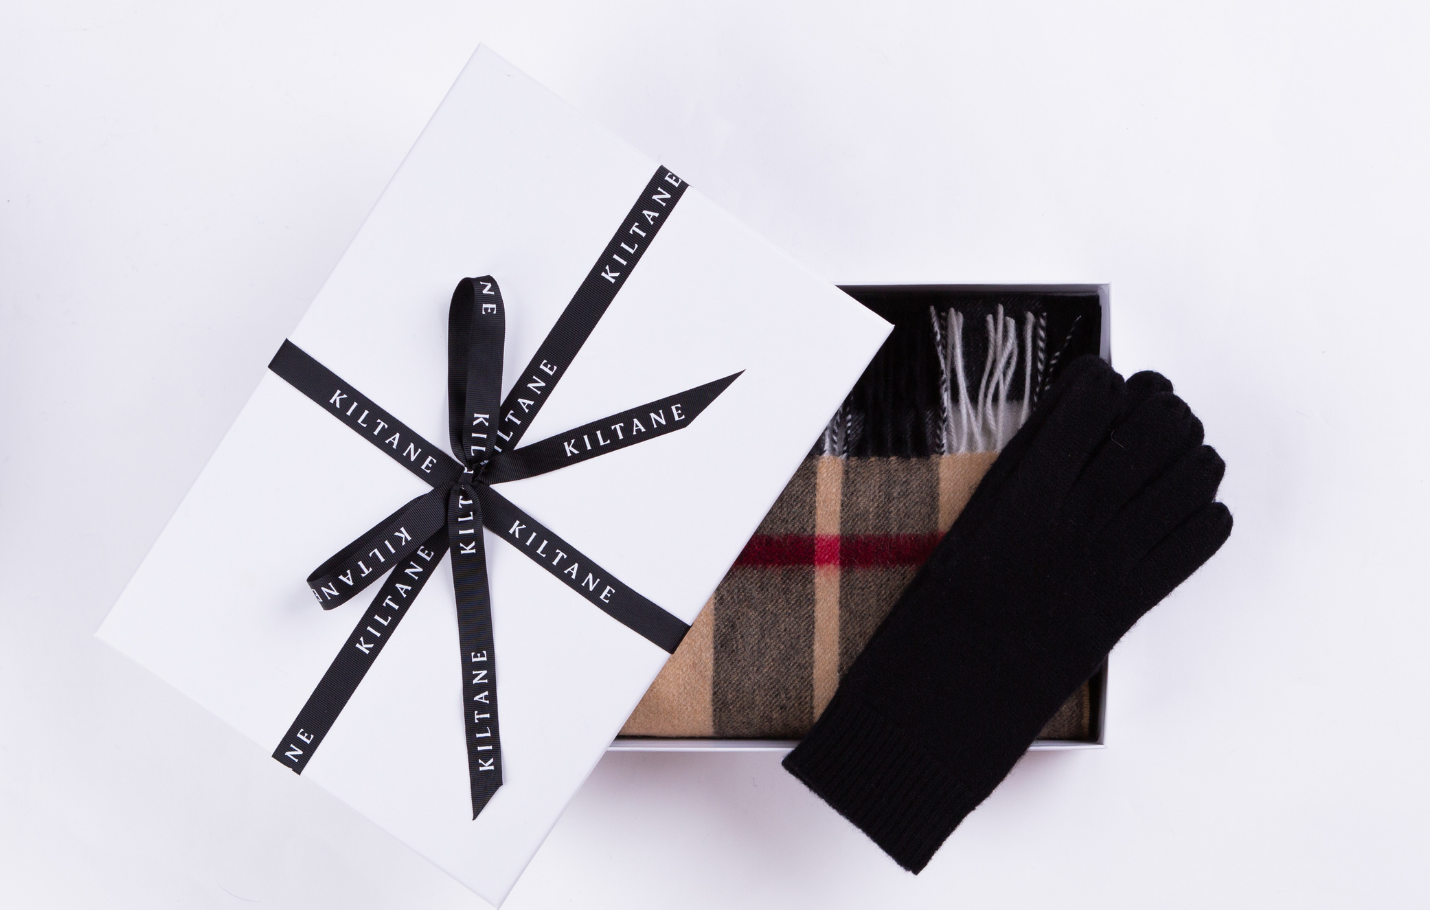 Luxury gift sets from Kiltane